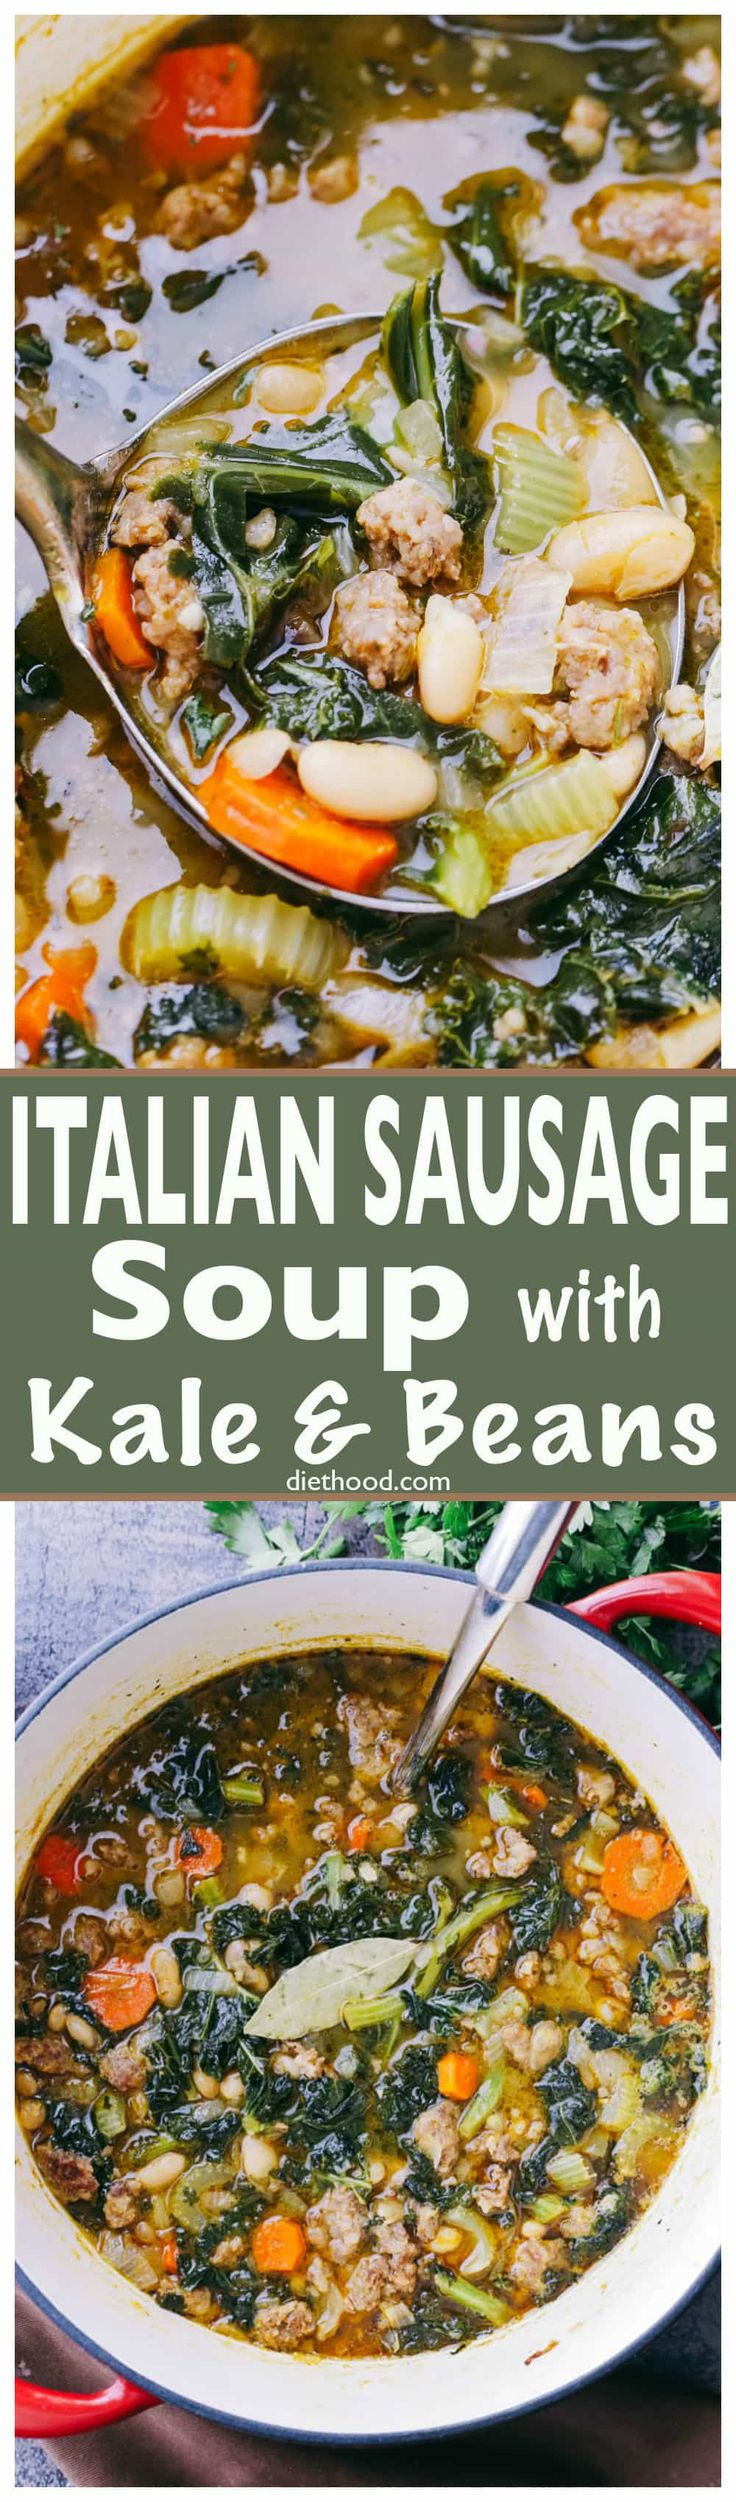 Italian Sausage Soup with Kale and Beans - Hearty and incredibly delicious soup prepared with Italian Sausage, onions, garlic, kale, and beans! via @diethood